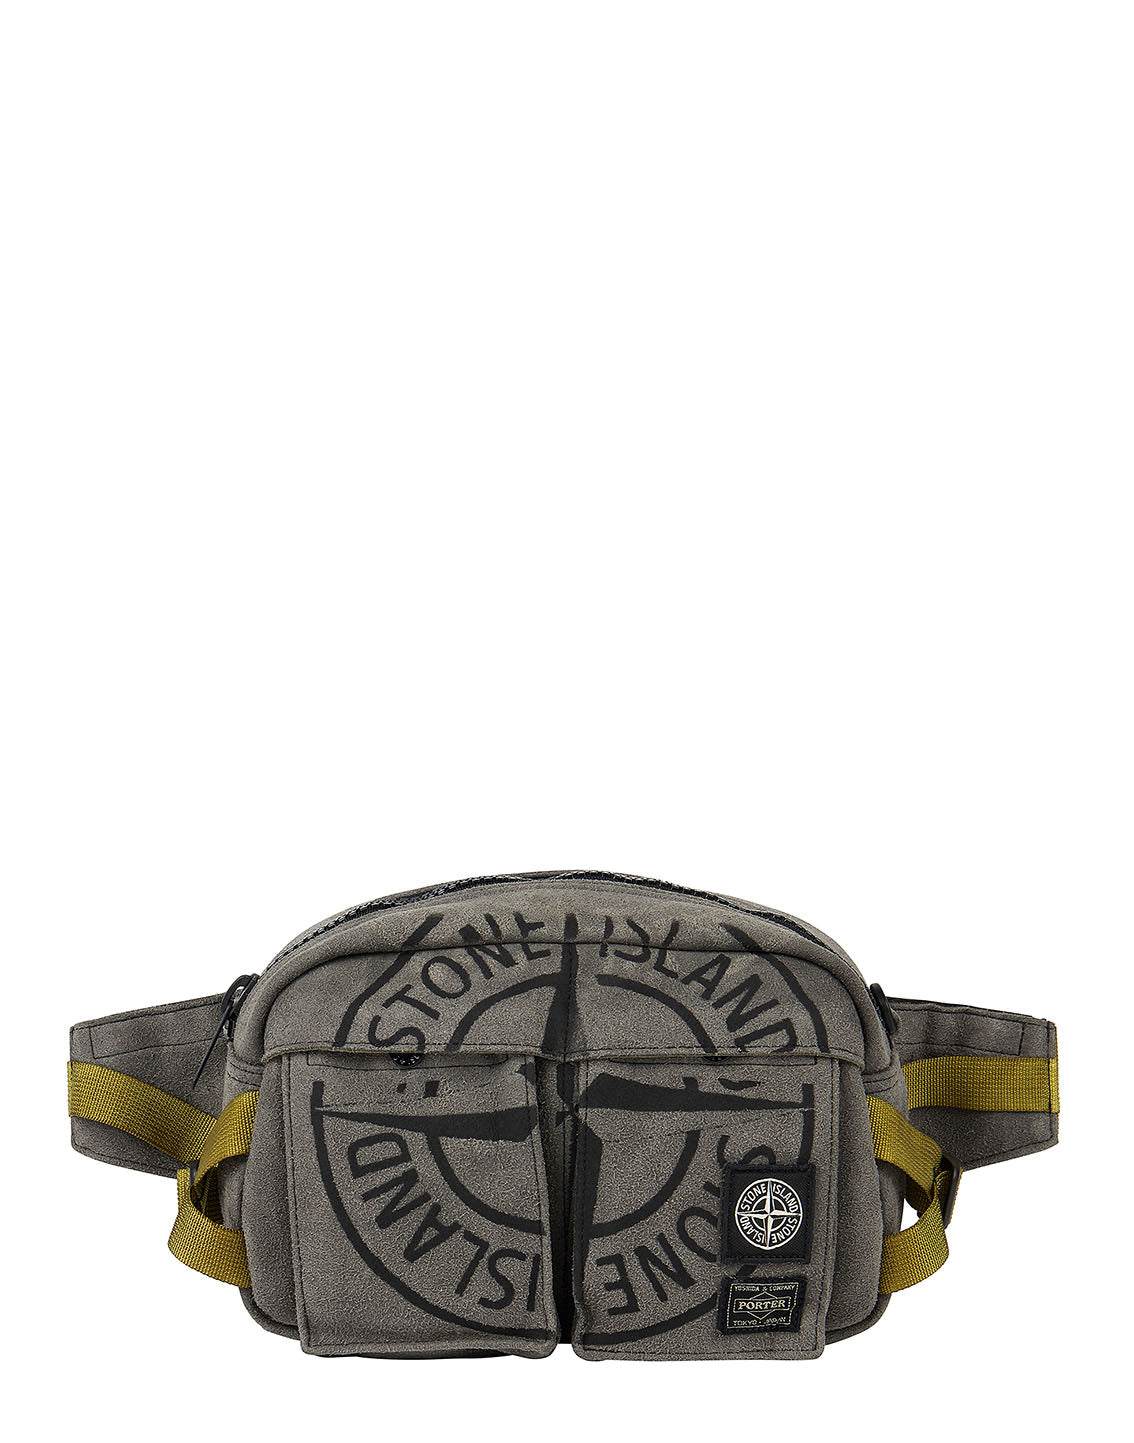 916P1 STONE ISLAND/PORTER STONE ISLAND MAN MADE SUEDE_GARMENT DYED BUMBAG in Olive